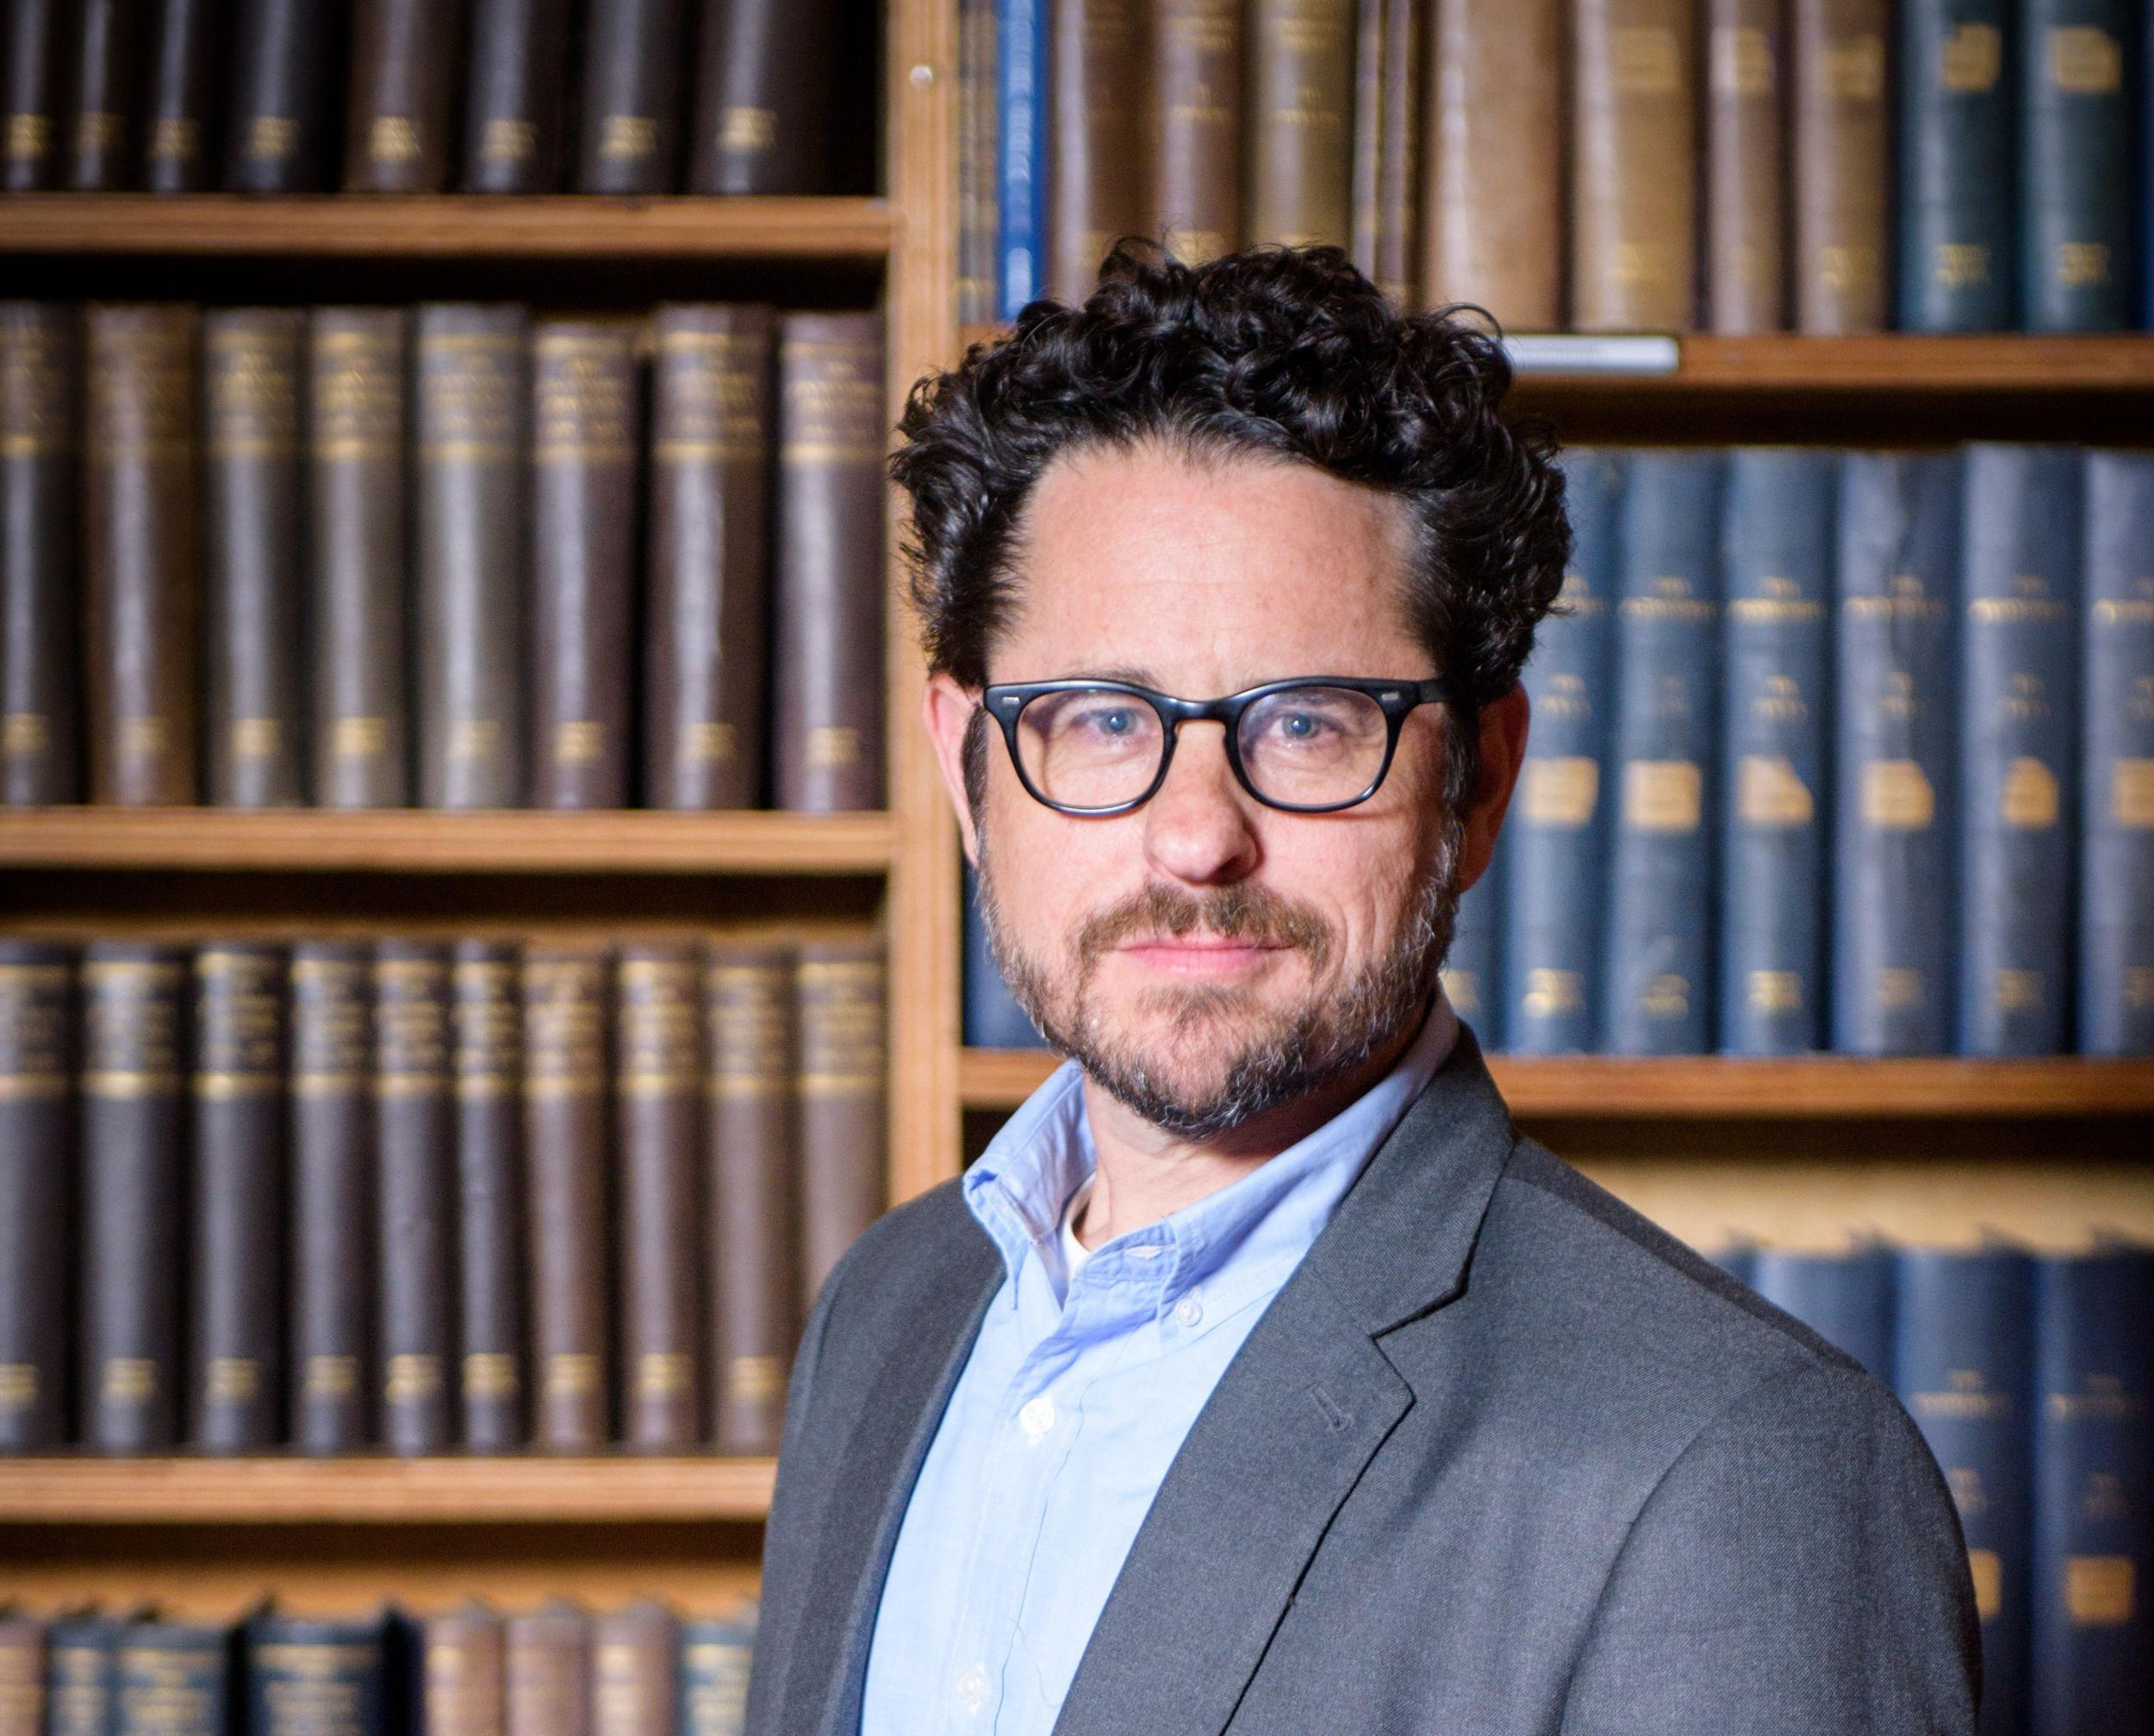 JJ Abrams on The Cloverfield Paradox, Star Wars 9, and going to the movies